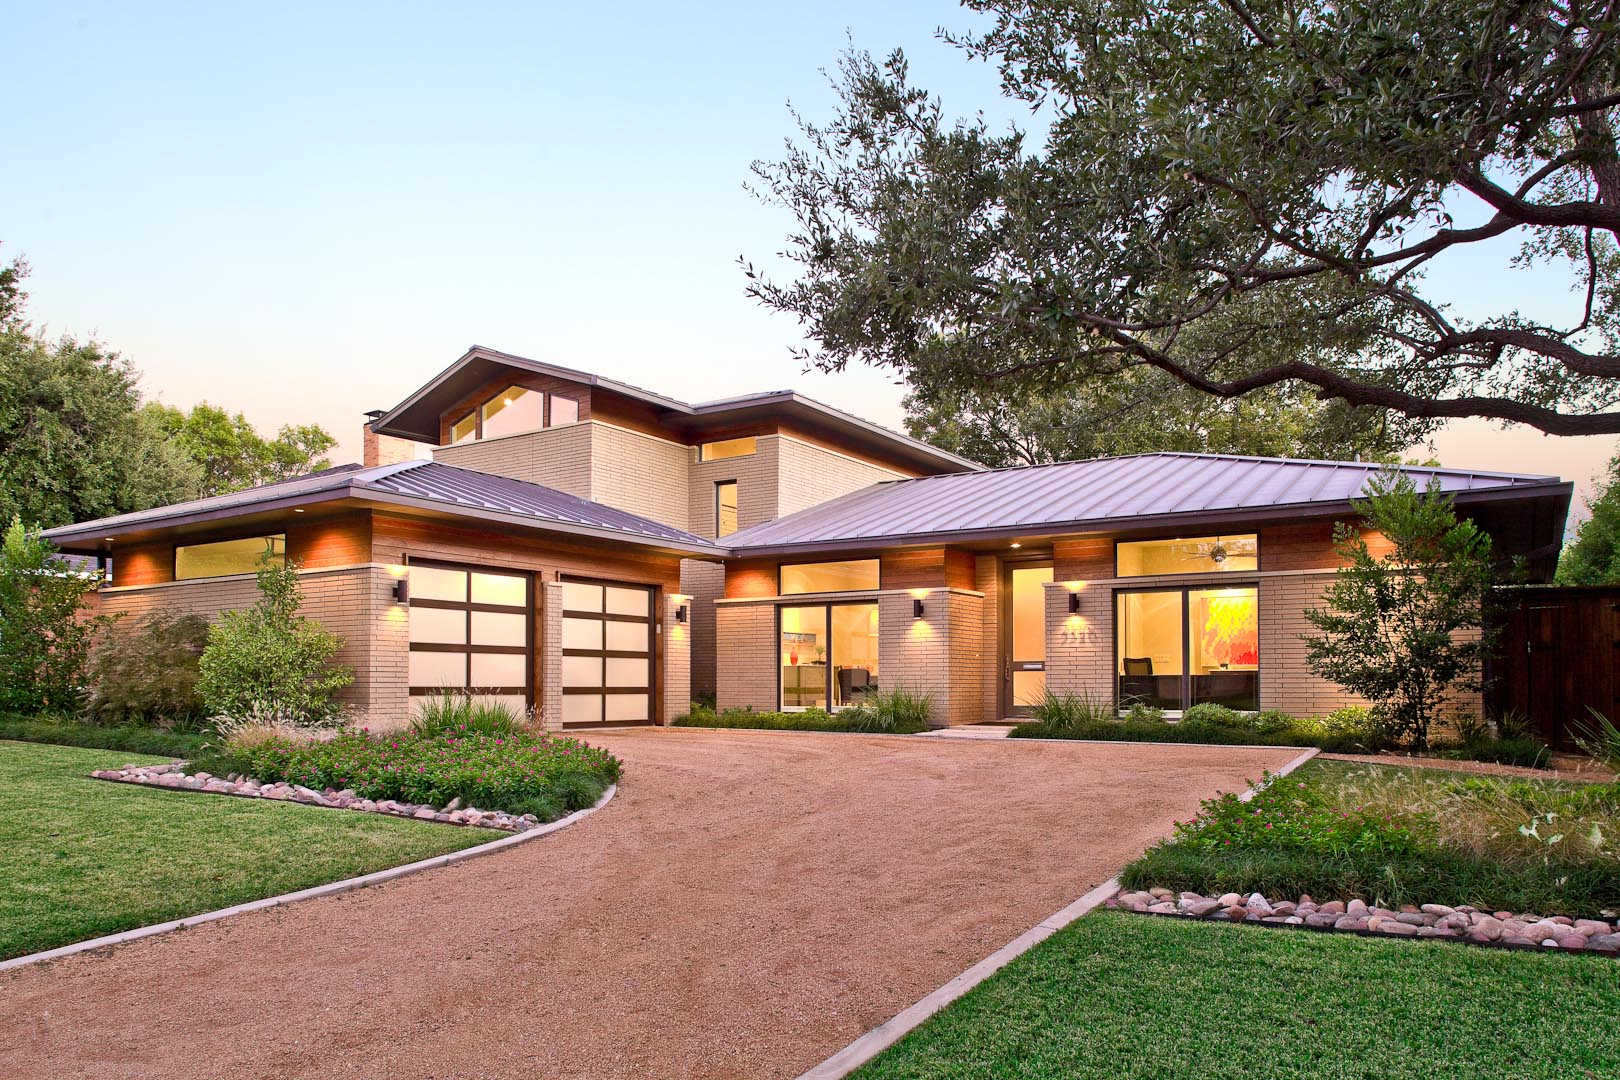 Dallas residential architecture and interiors photographer for Residential architect